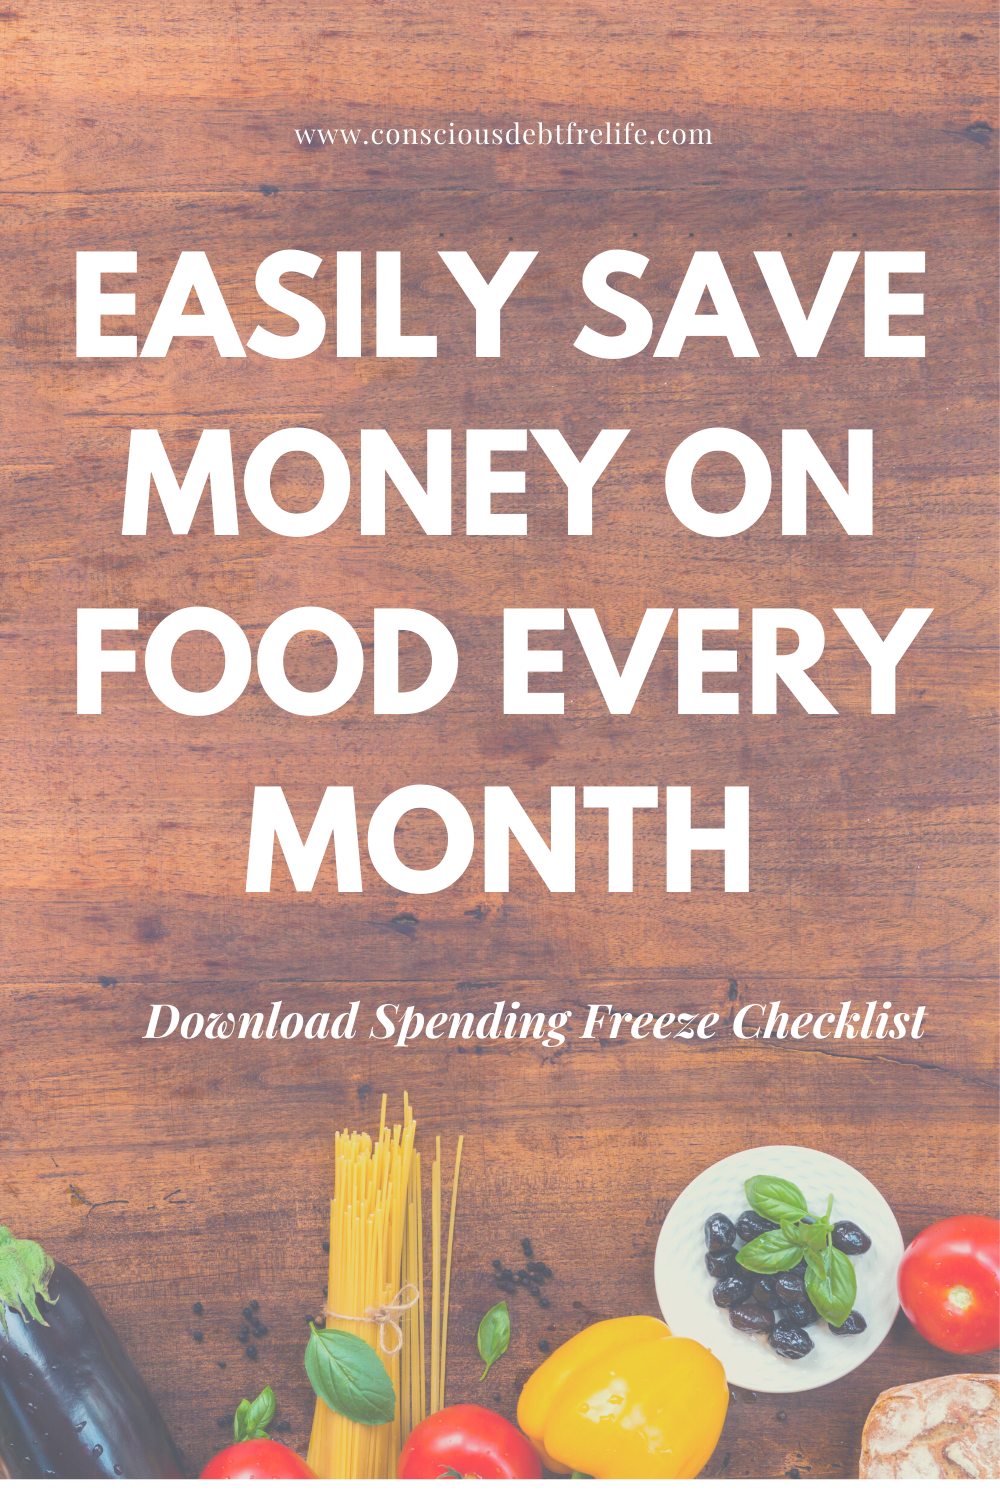 Easily Save Money on Food Every Month